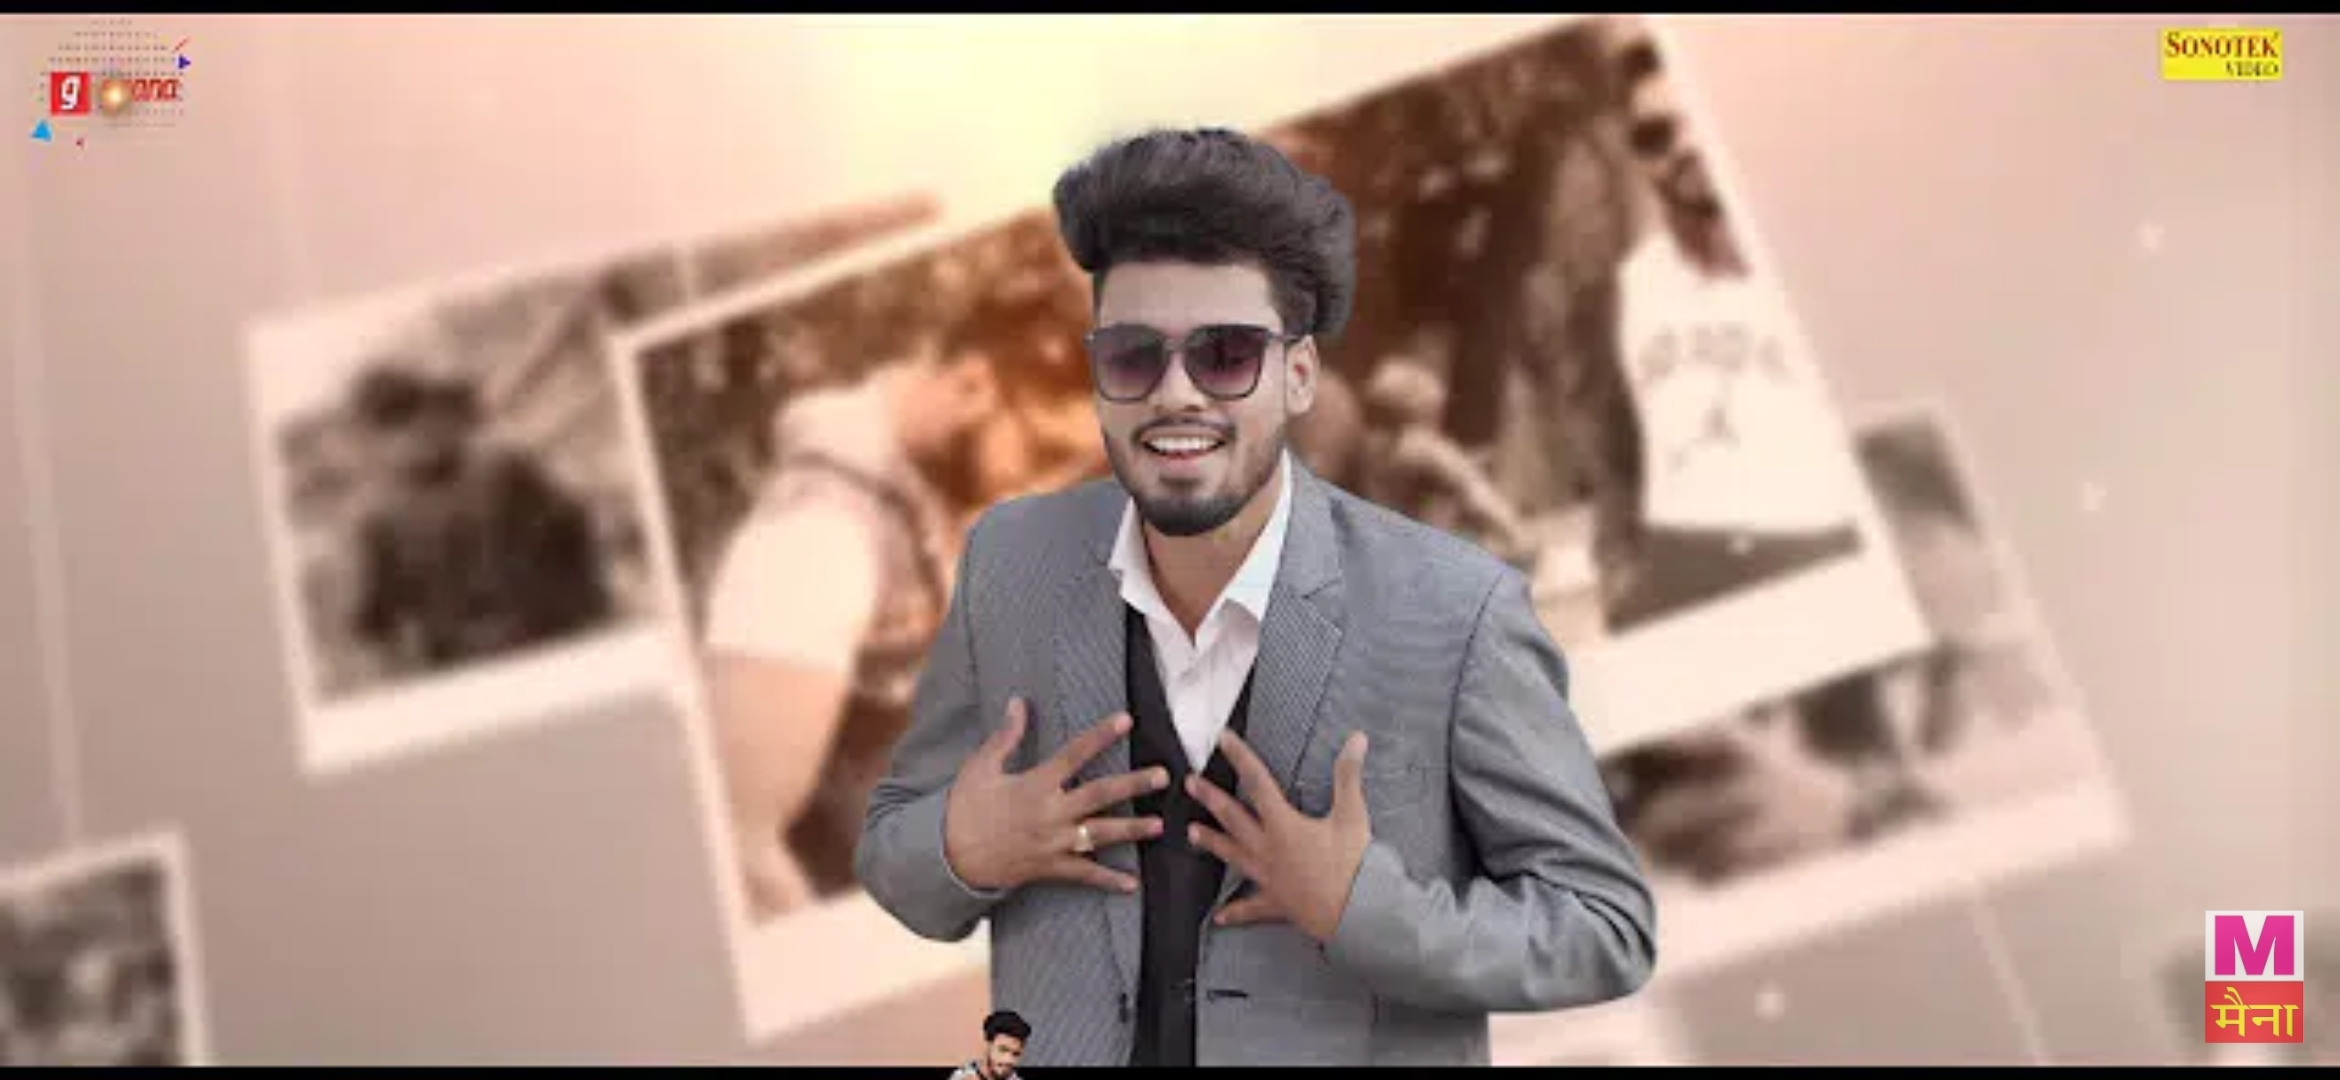 Sumit goswami  mere yaar purane mod do full official video song